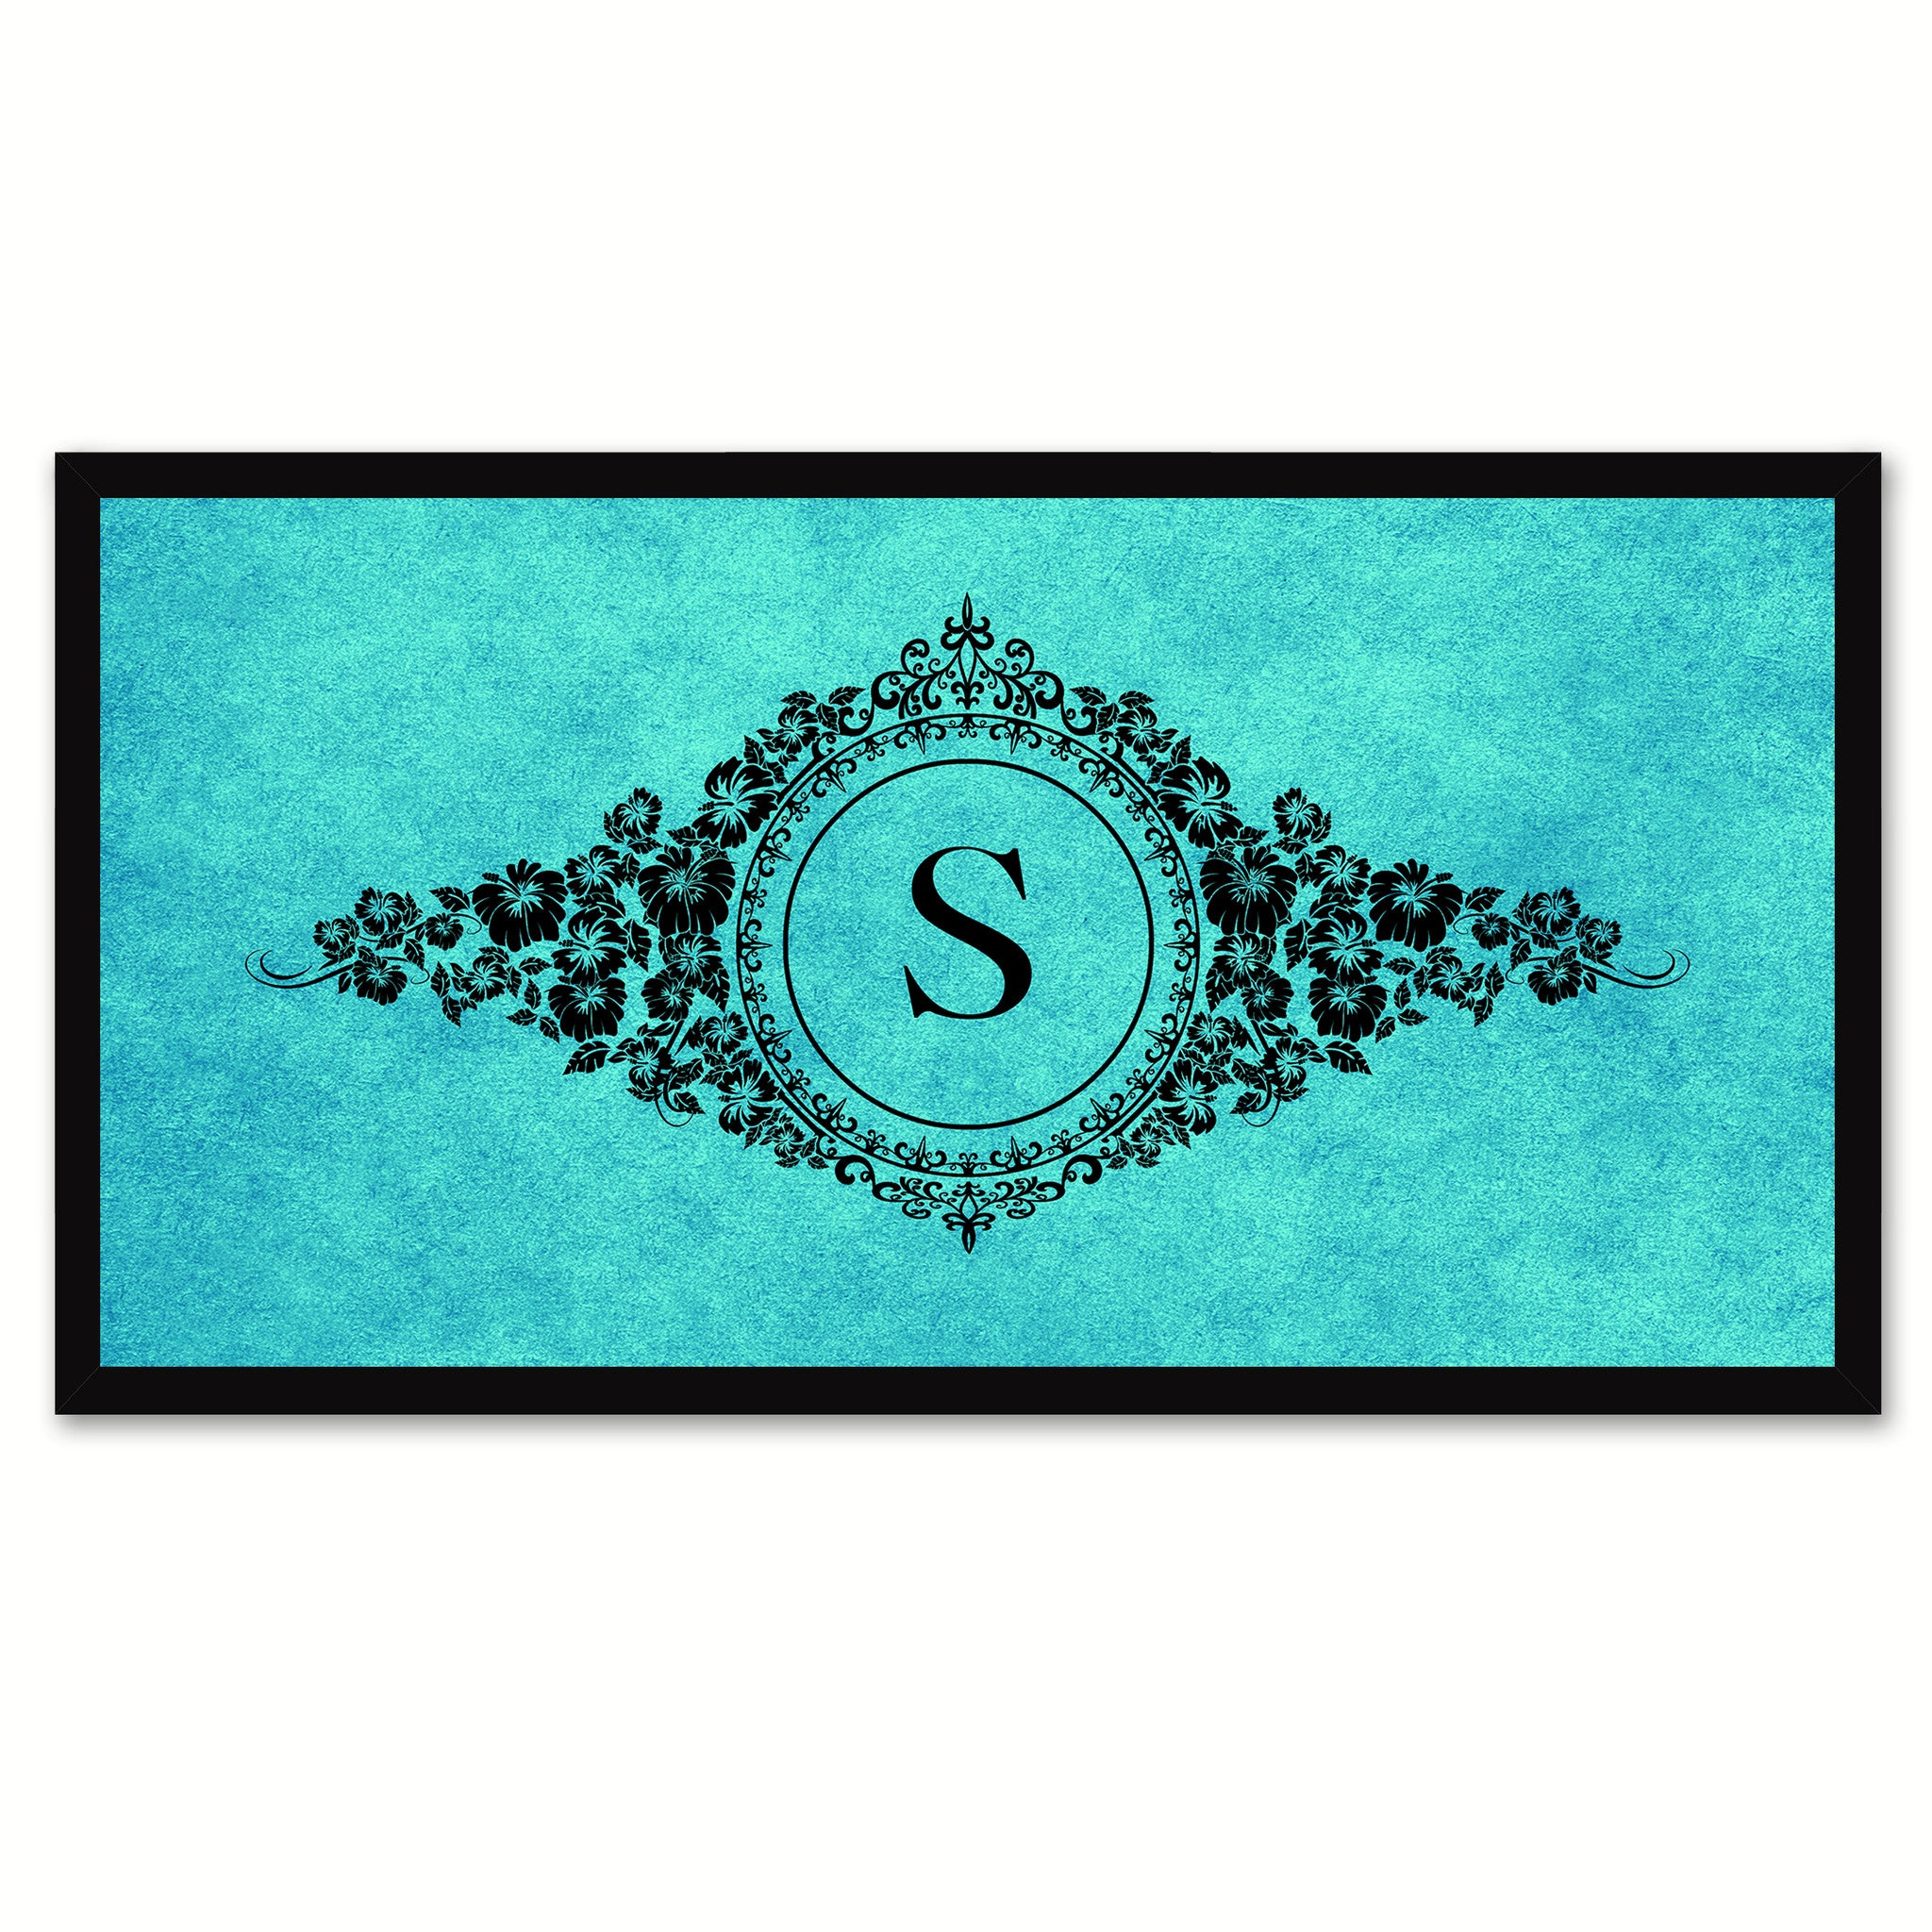 Alphabet Letter S Auqa Canvas Print, Black Custom Frame